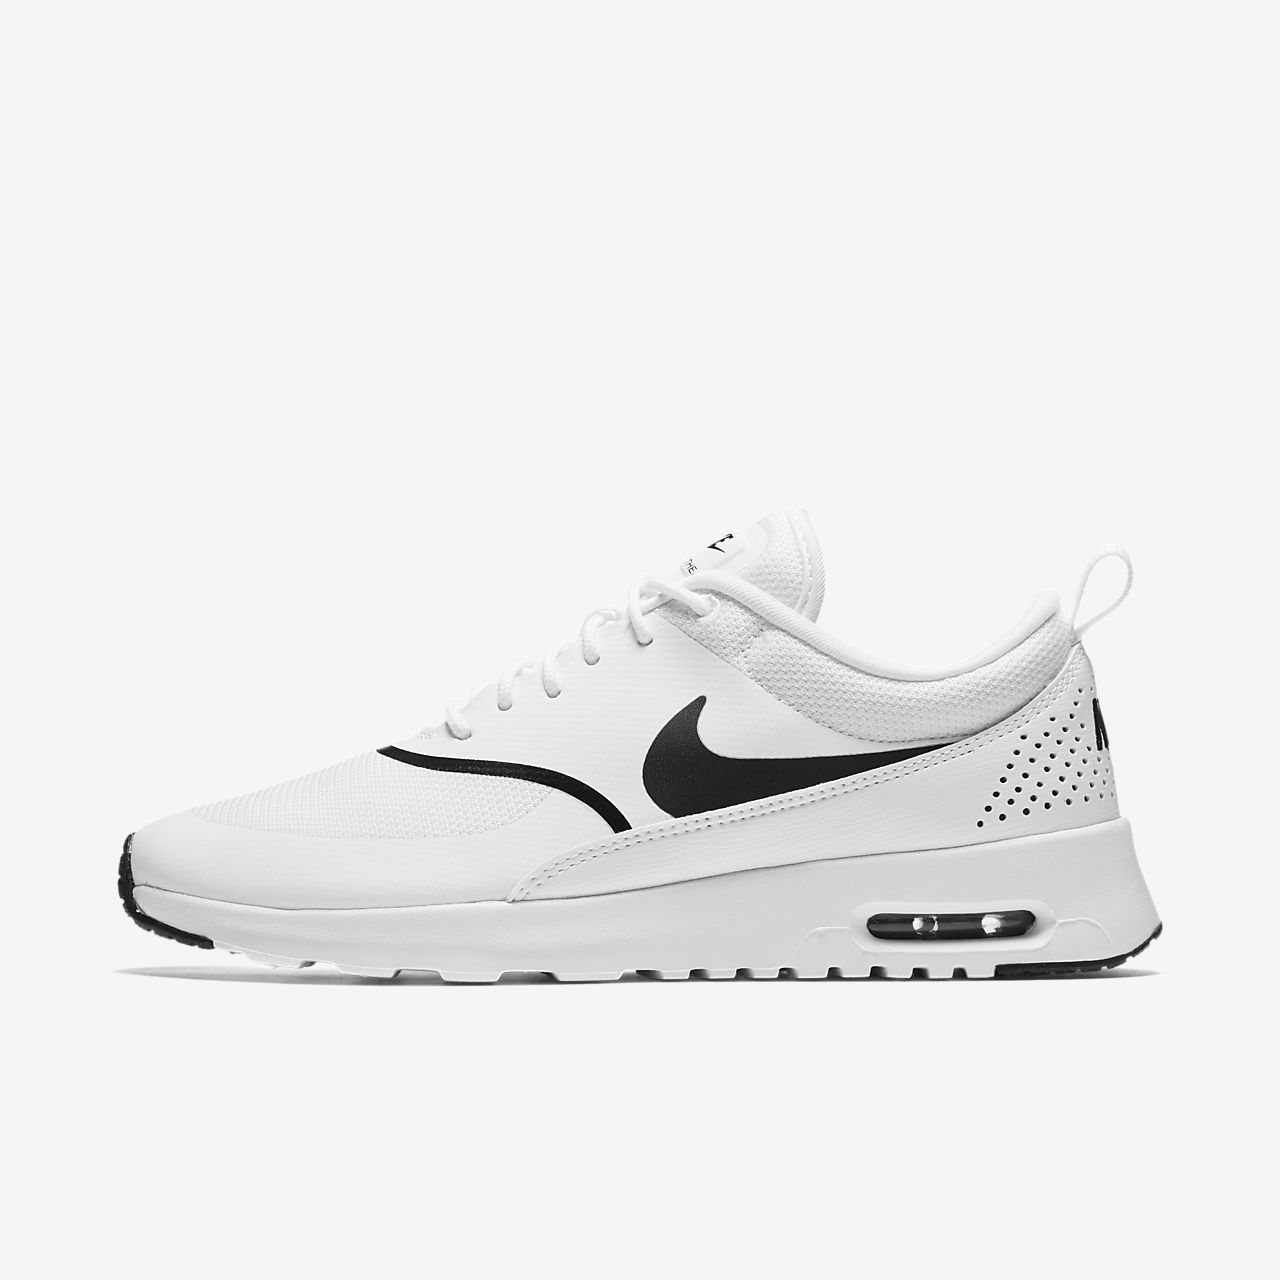 856b0d28be Nike Air Max Thea Women's Shoe. Nike.com SE